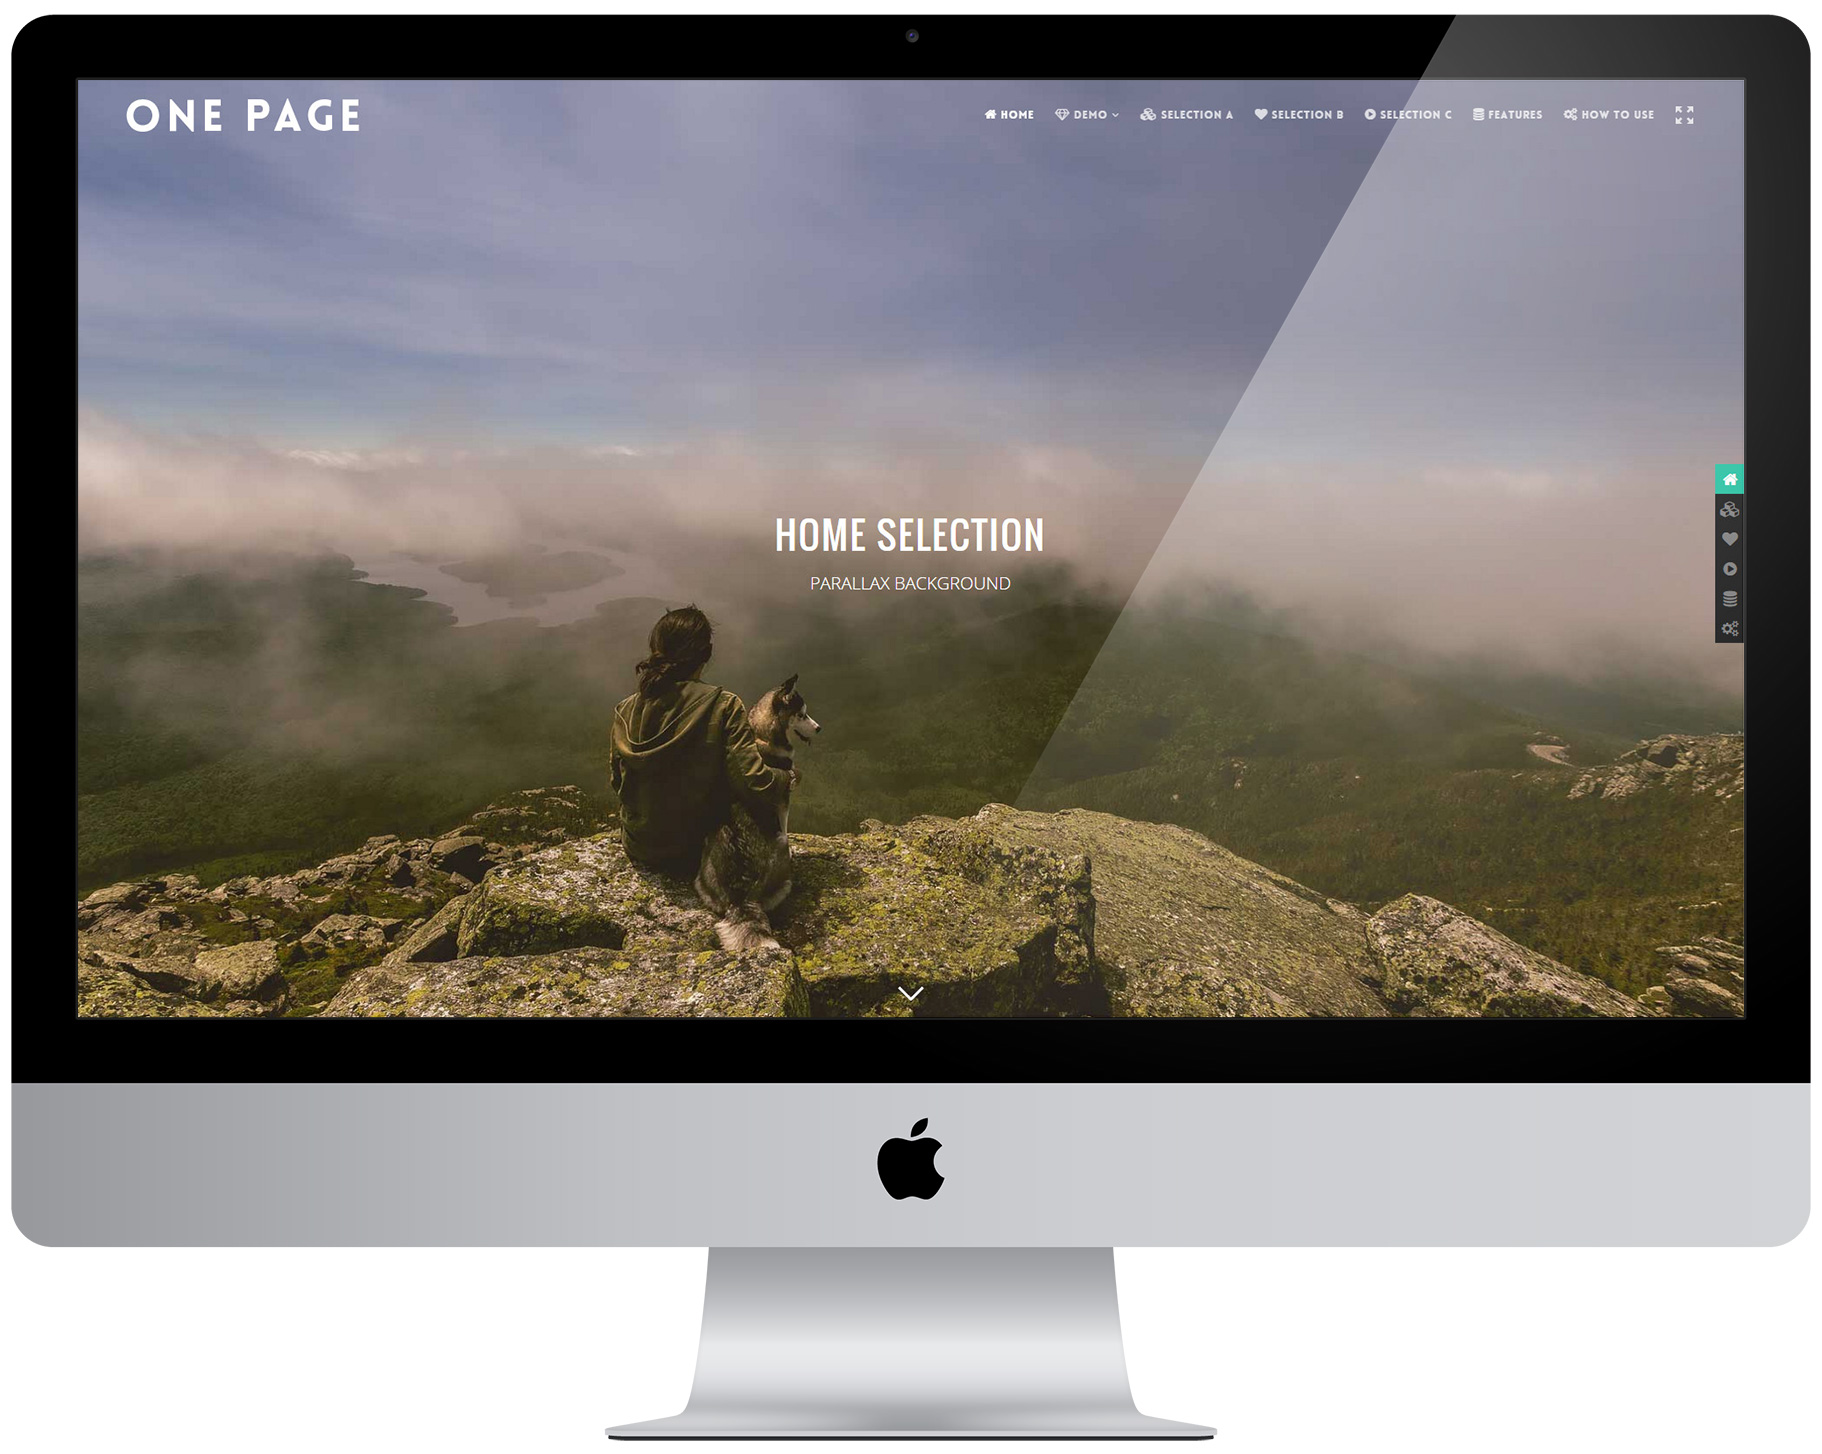 Smart One Page Navigation - Addon For WPBakery Page Builder (Visual Composer) - 4